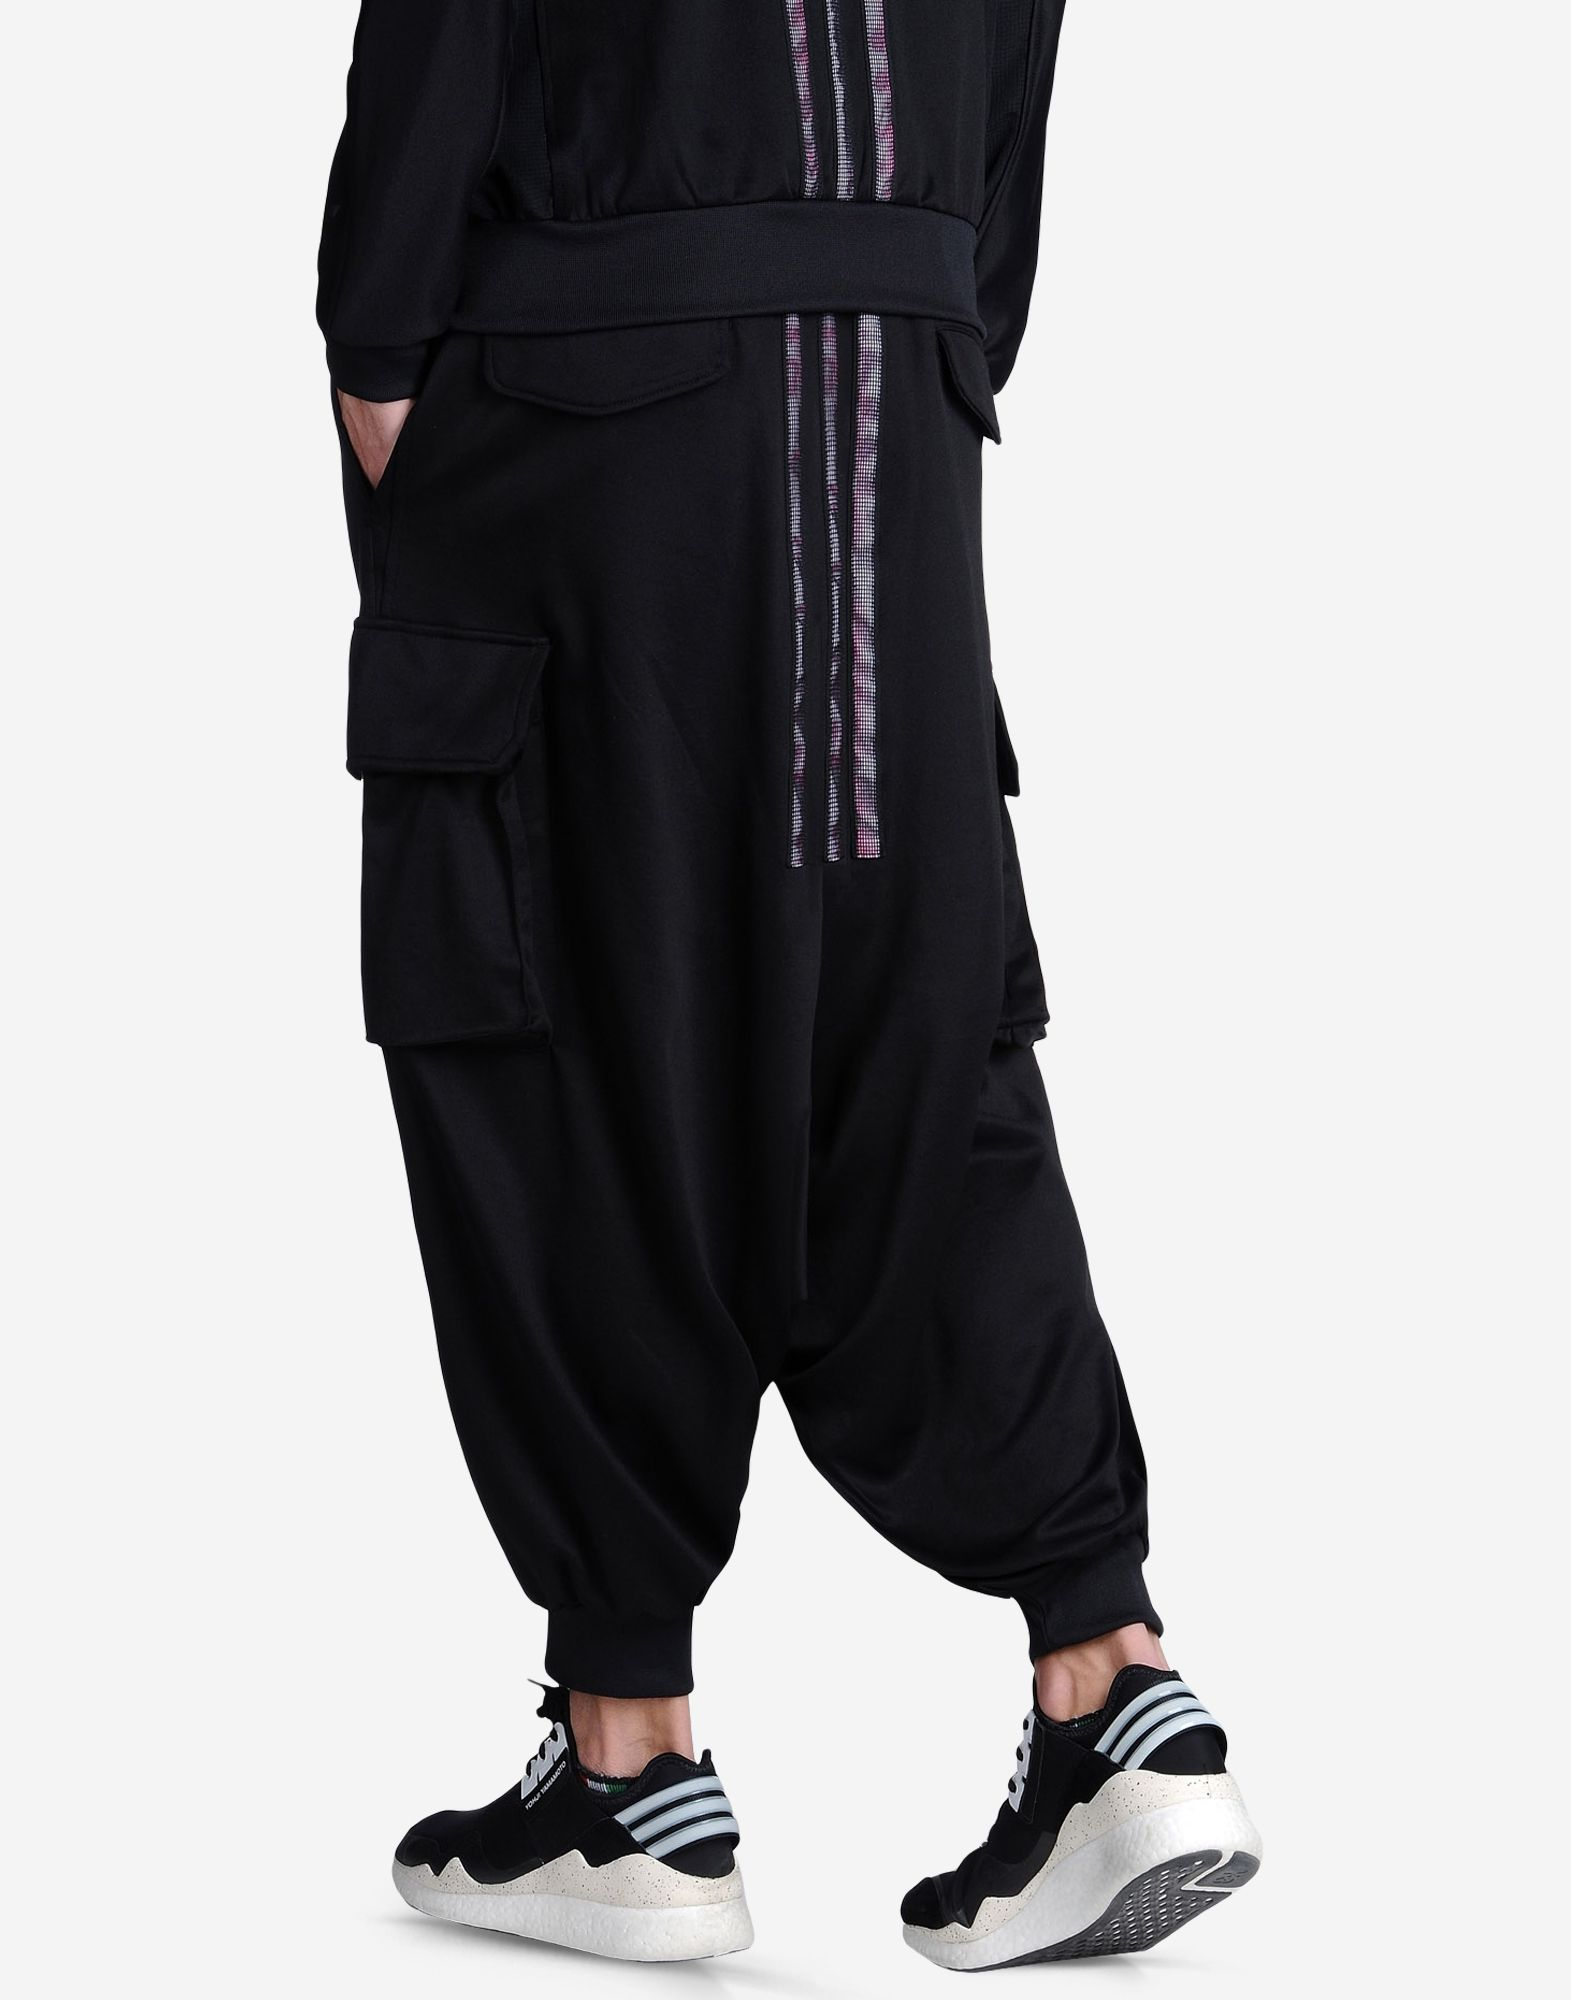 Harem pants for women and for men by FantaZia, Ethical Clothing since Be unique and ultra comfortable in our thick cotton harem pants for both men and women, perfect on cool days. And for quiet moments at home, discover our range of harem pants for men and women % pure Nepalese cotton.